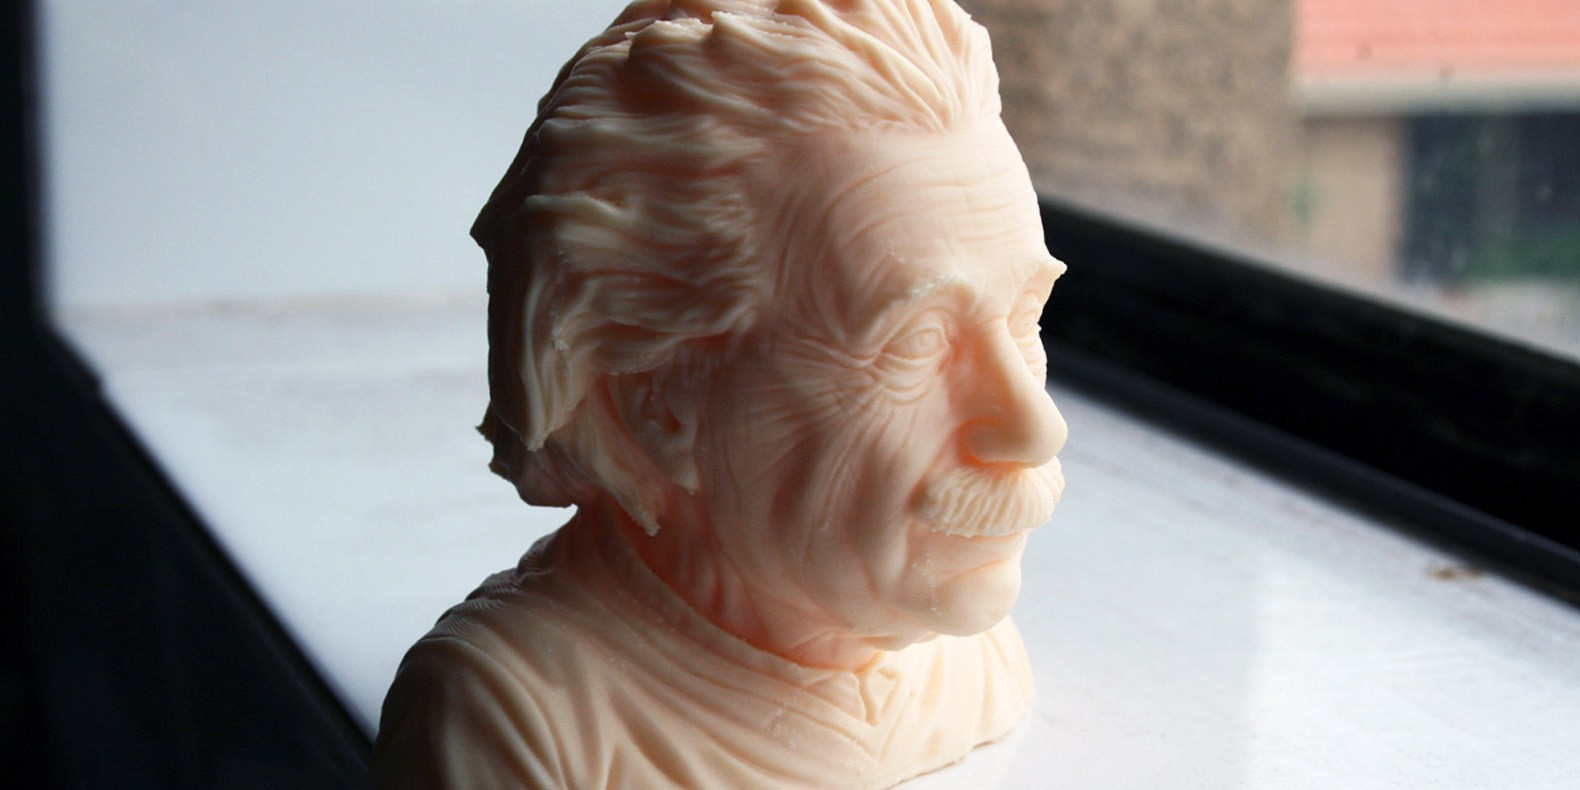 Here is a selection of the best busts 3D models to make with a 3D printer